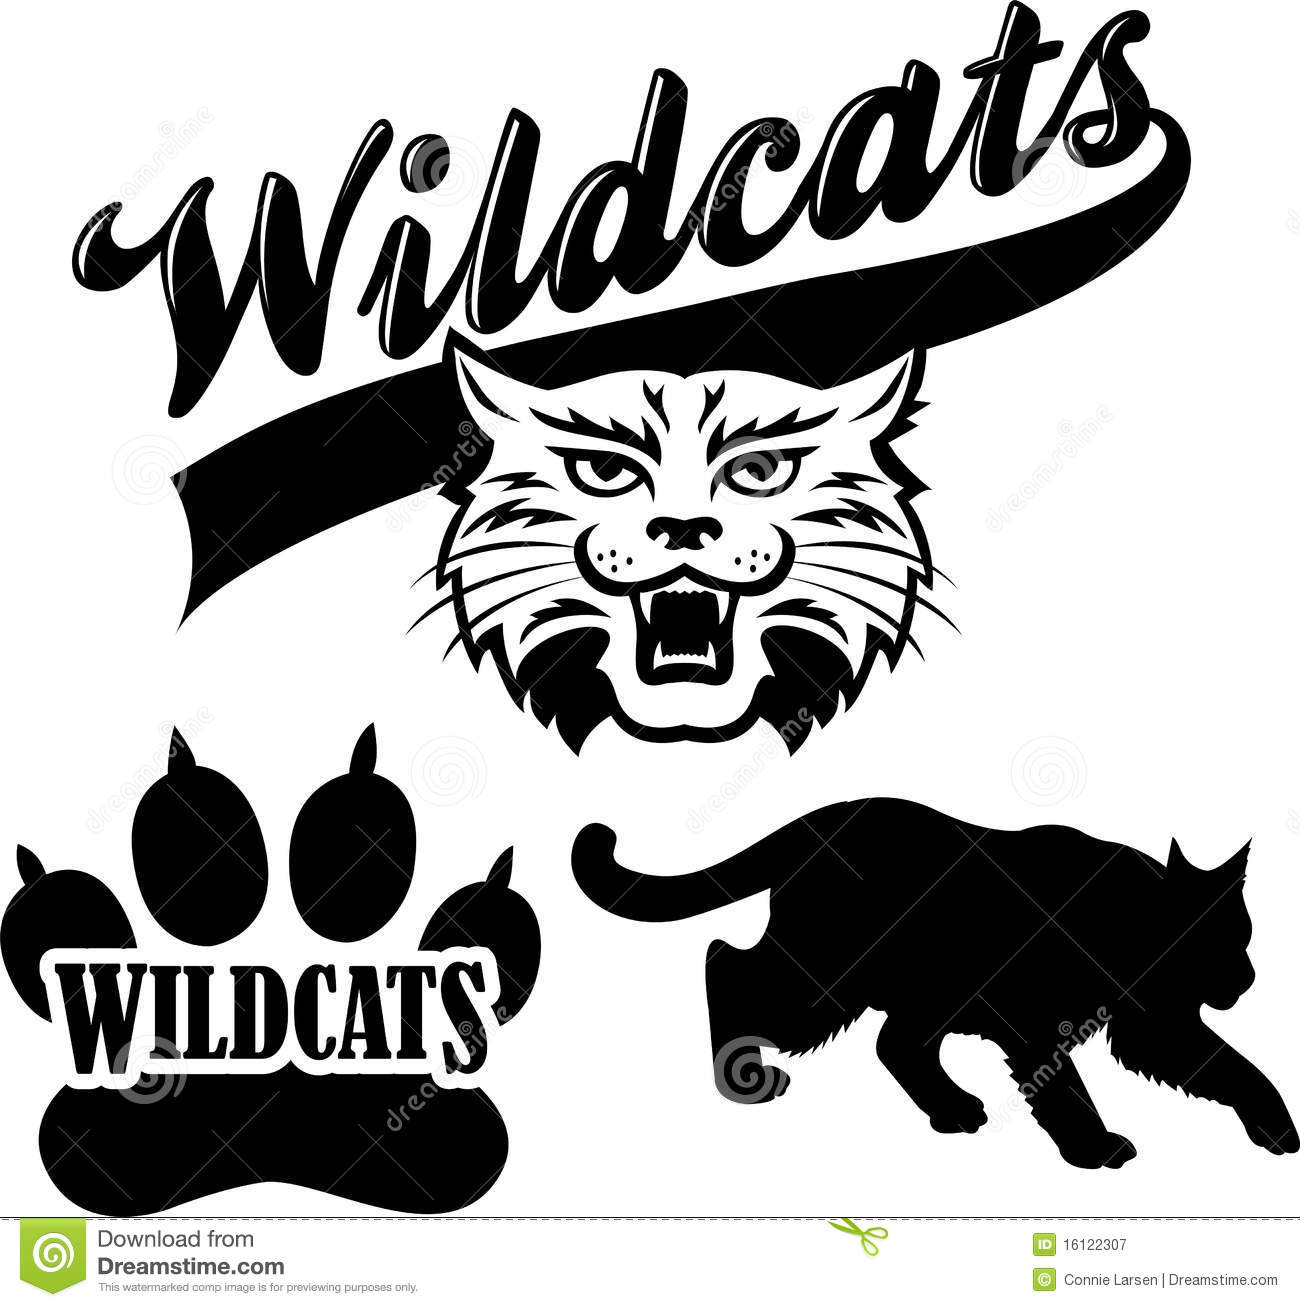 wildcat black and white clipart clipart suggest Wildcat Logo Clip Art Free Wildcat Logo Clip Art Free